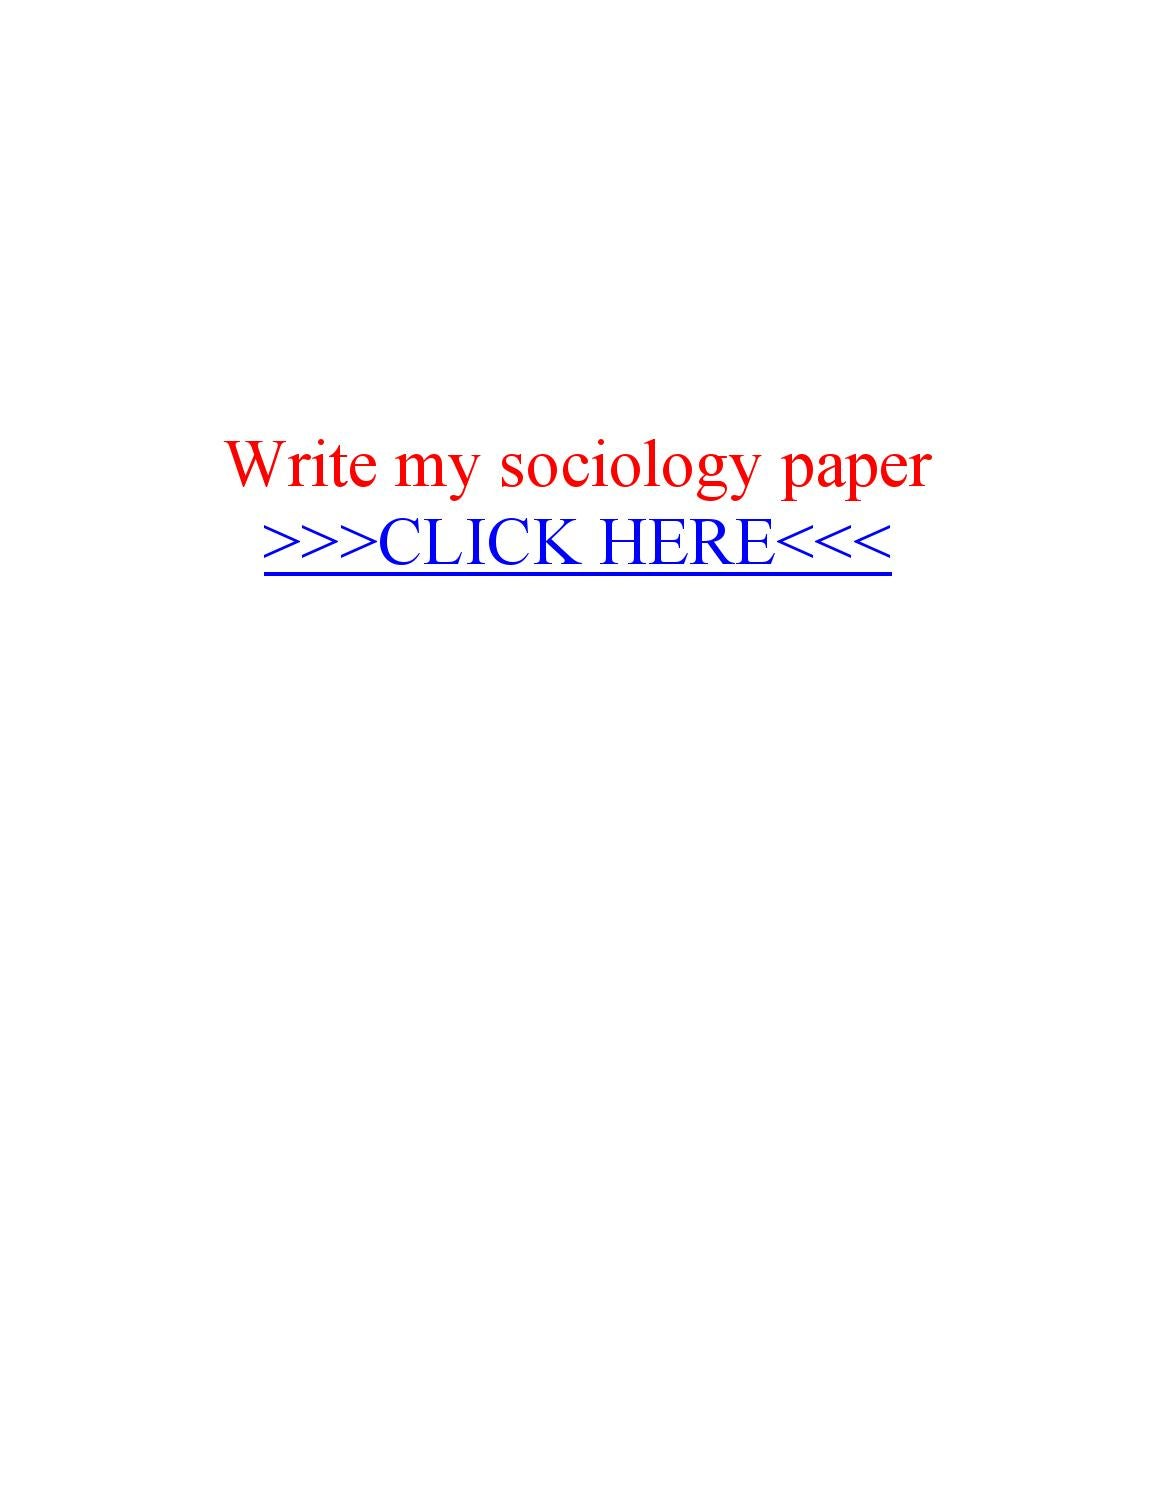 Sociology essay writing service